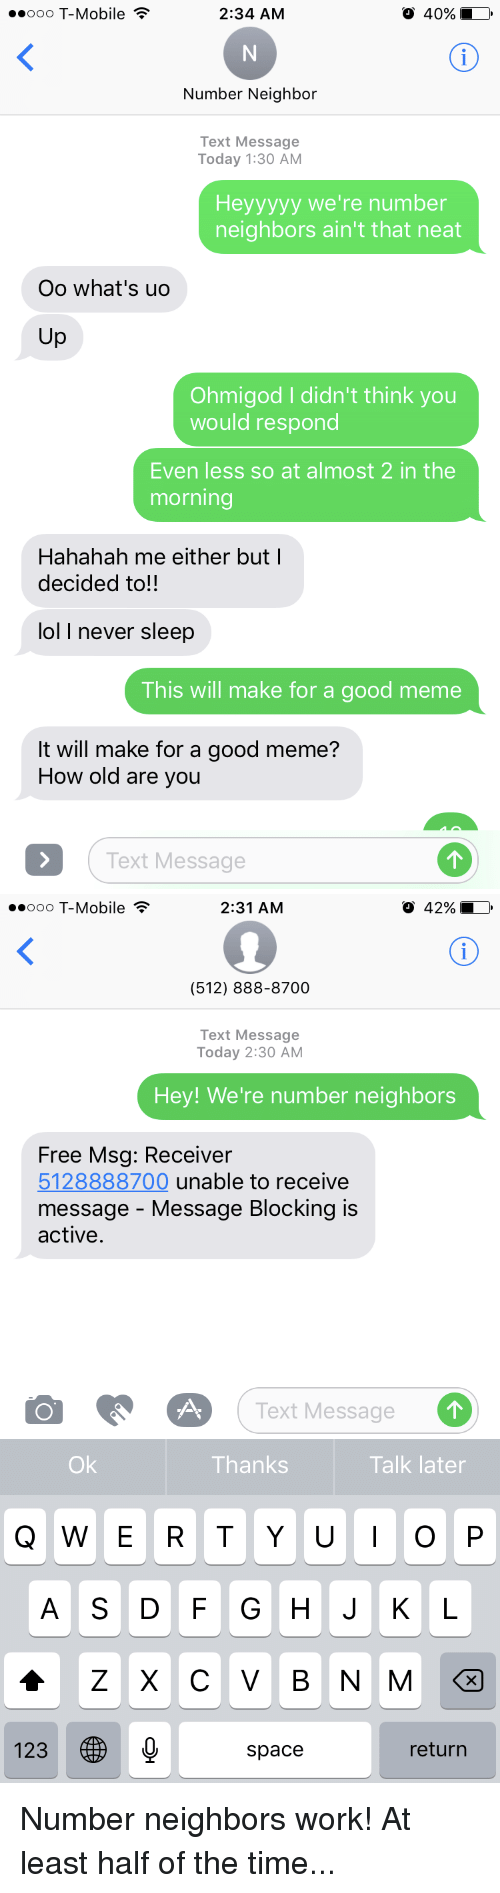 Ooo T-Mobile 234 AM 40% Number Neighbor Text Message Today 130 AM